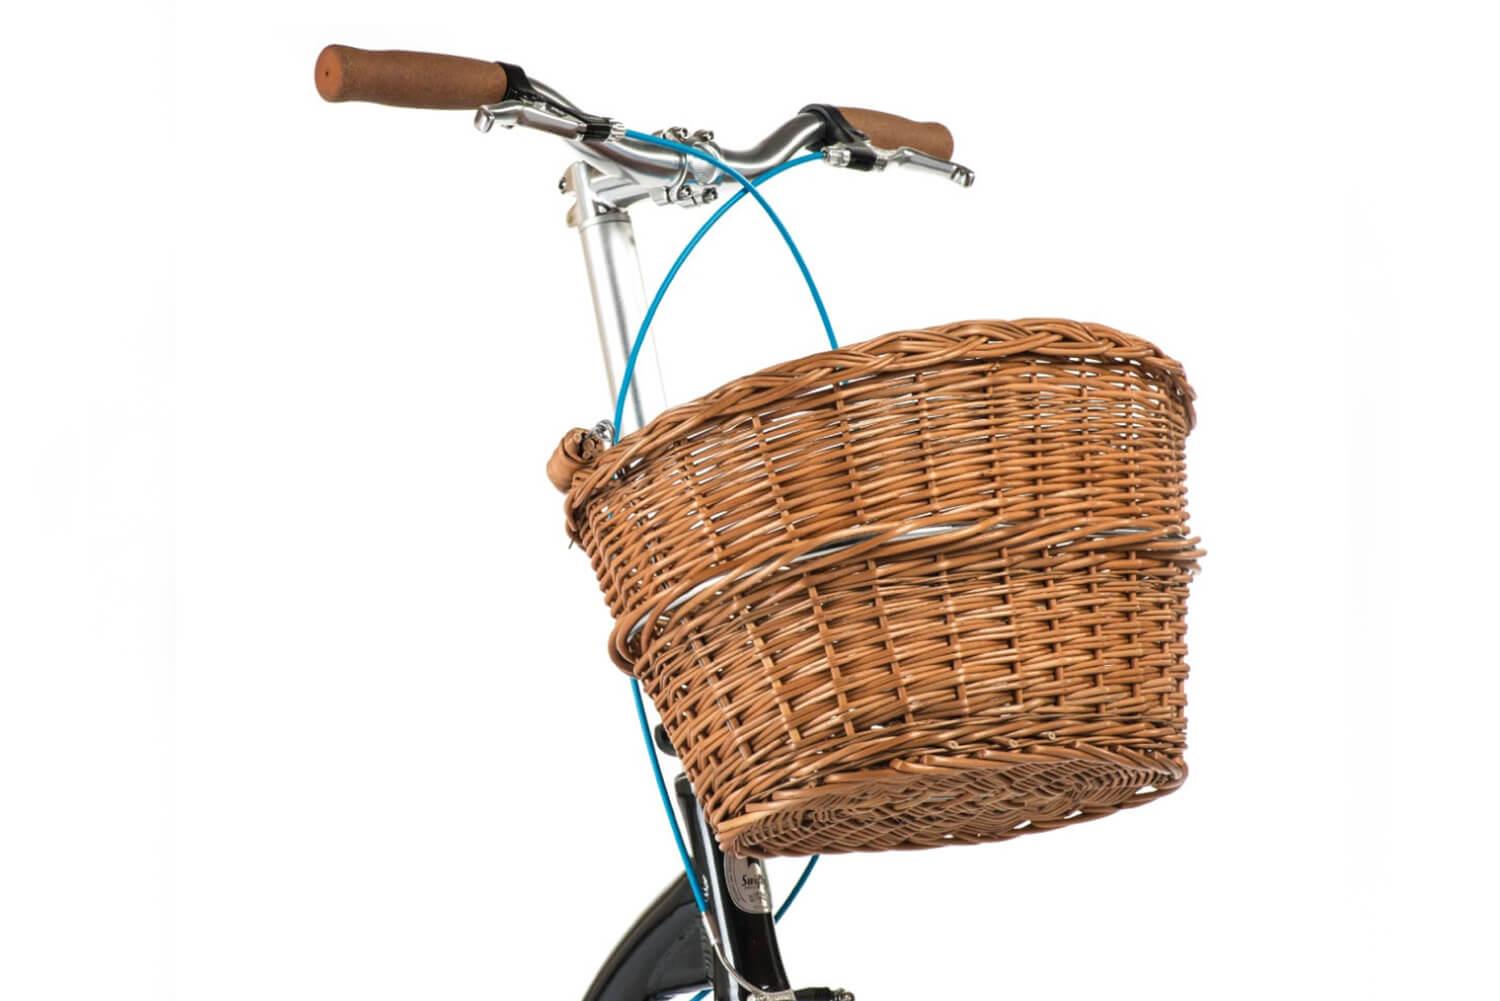 front basket for scooter, scooter wicker basket